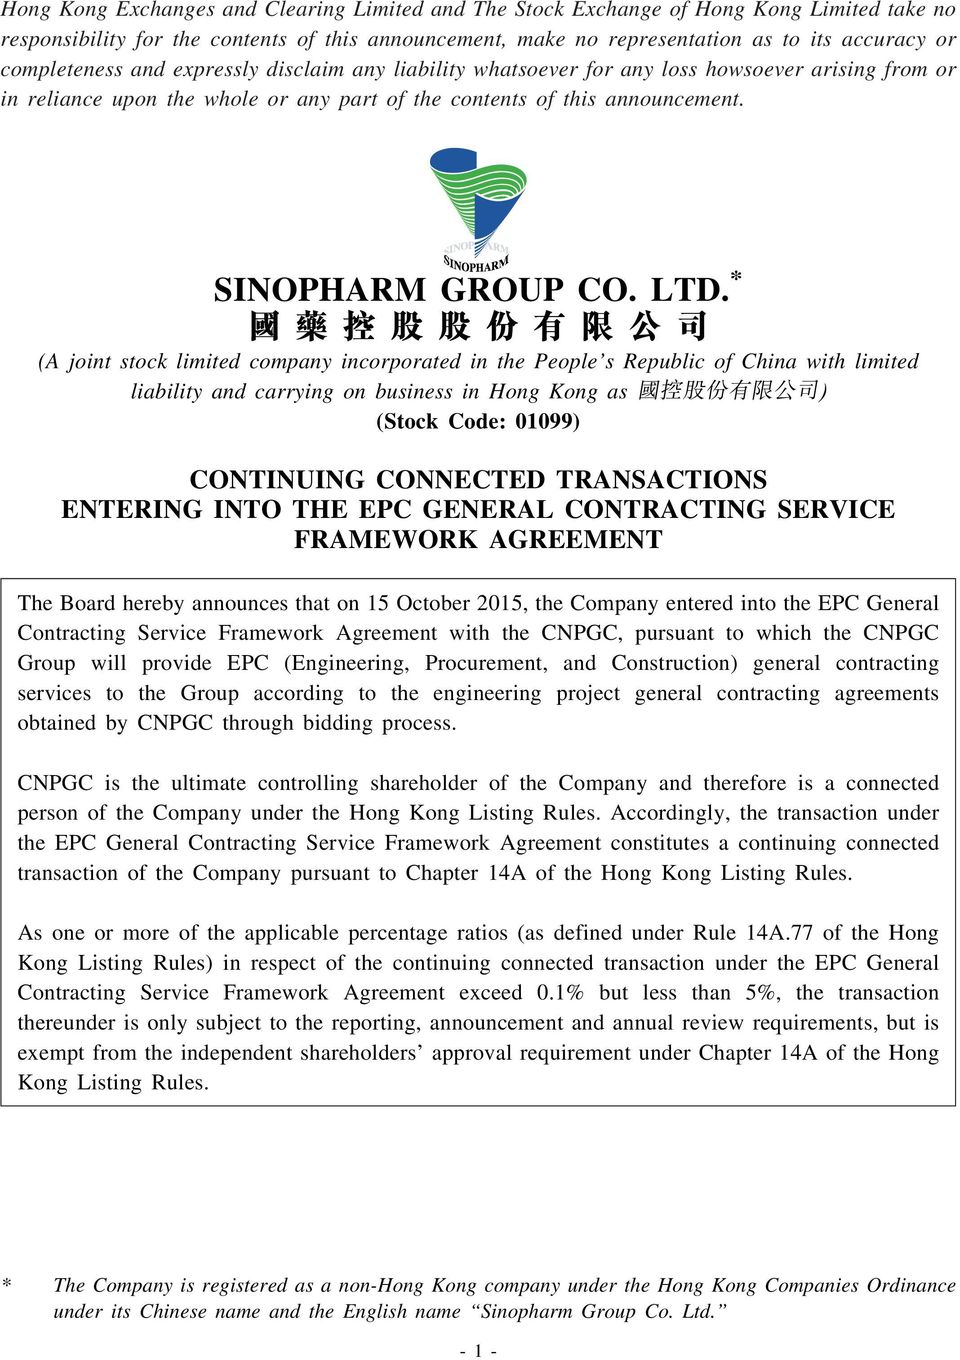 LTD. * 國 藥 控 股 股 份 有 限 公 司 (A joint stock limited company incorporated in the People s Republic of China with limited liability and carrying on business in Hong Kong as 國 控 股 份 有 限 公 司 ) (Stock Code: